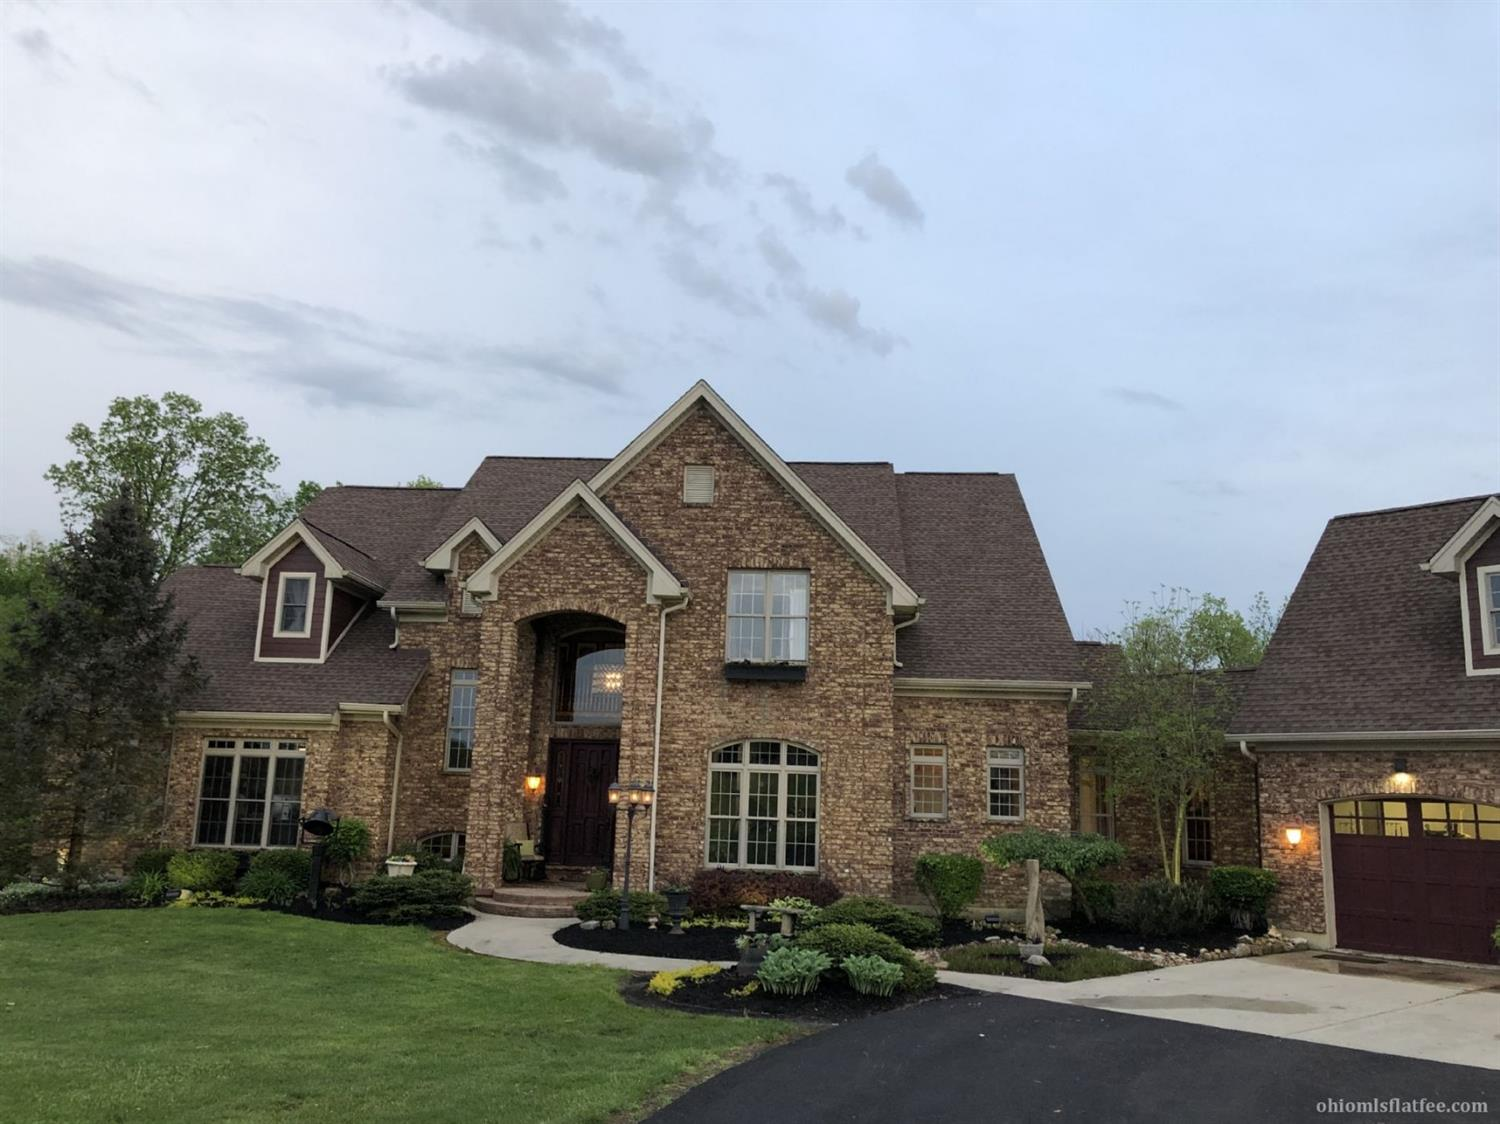 Photo 2 for 2075 Wood Rd Union Twp. (Warren), OH 45036